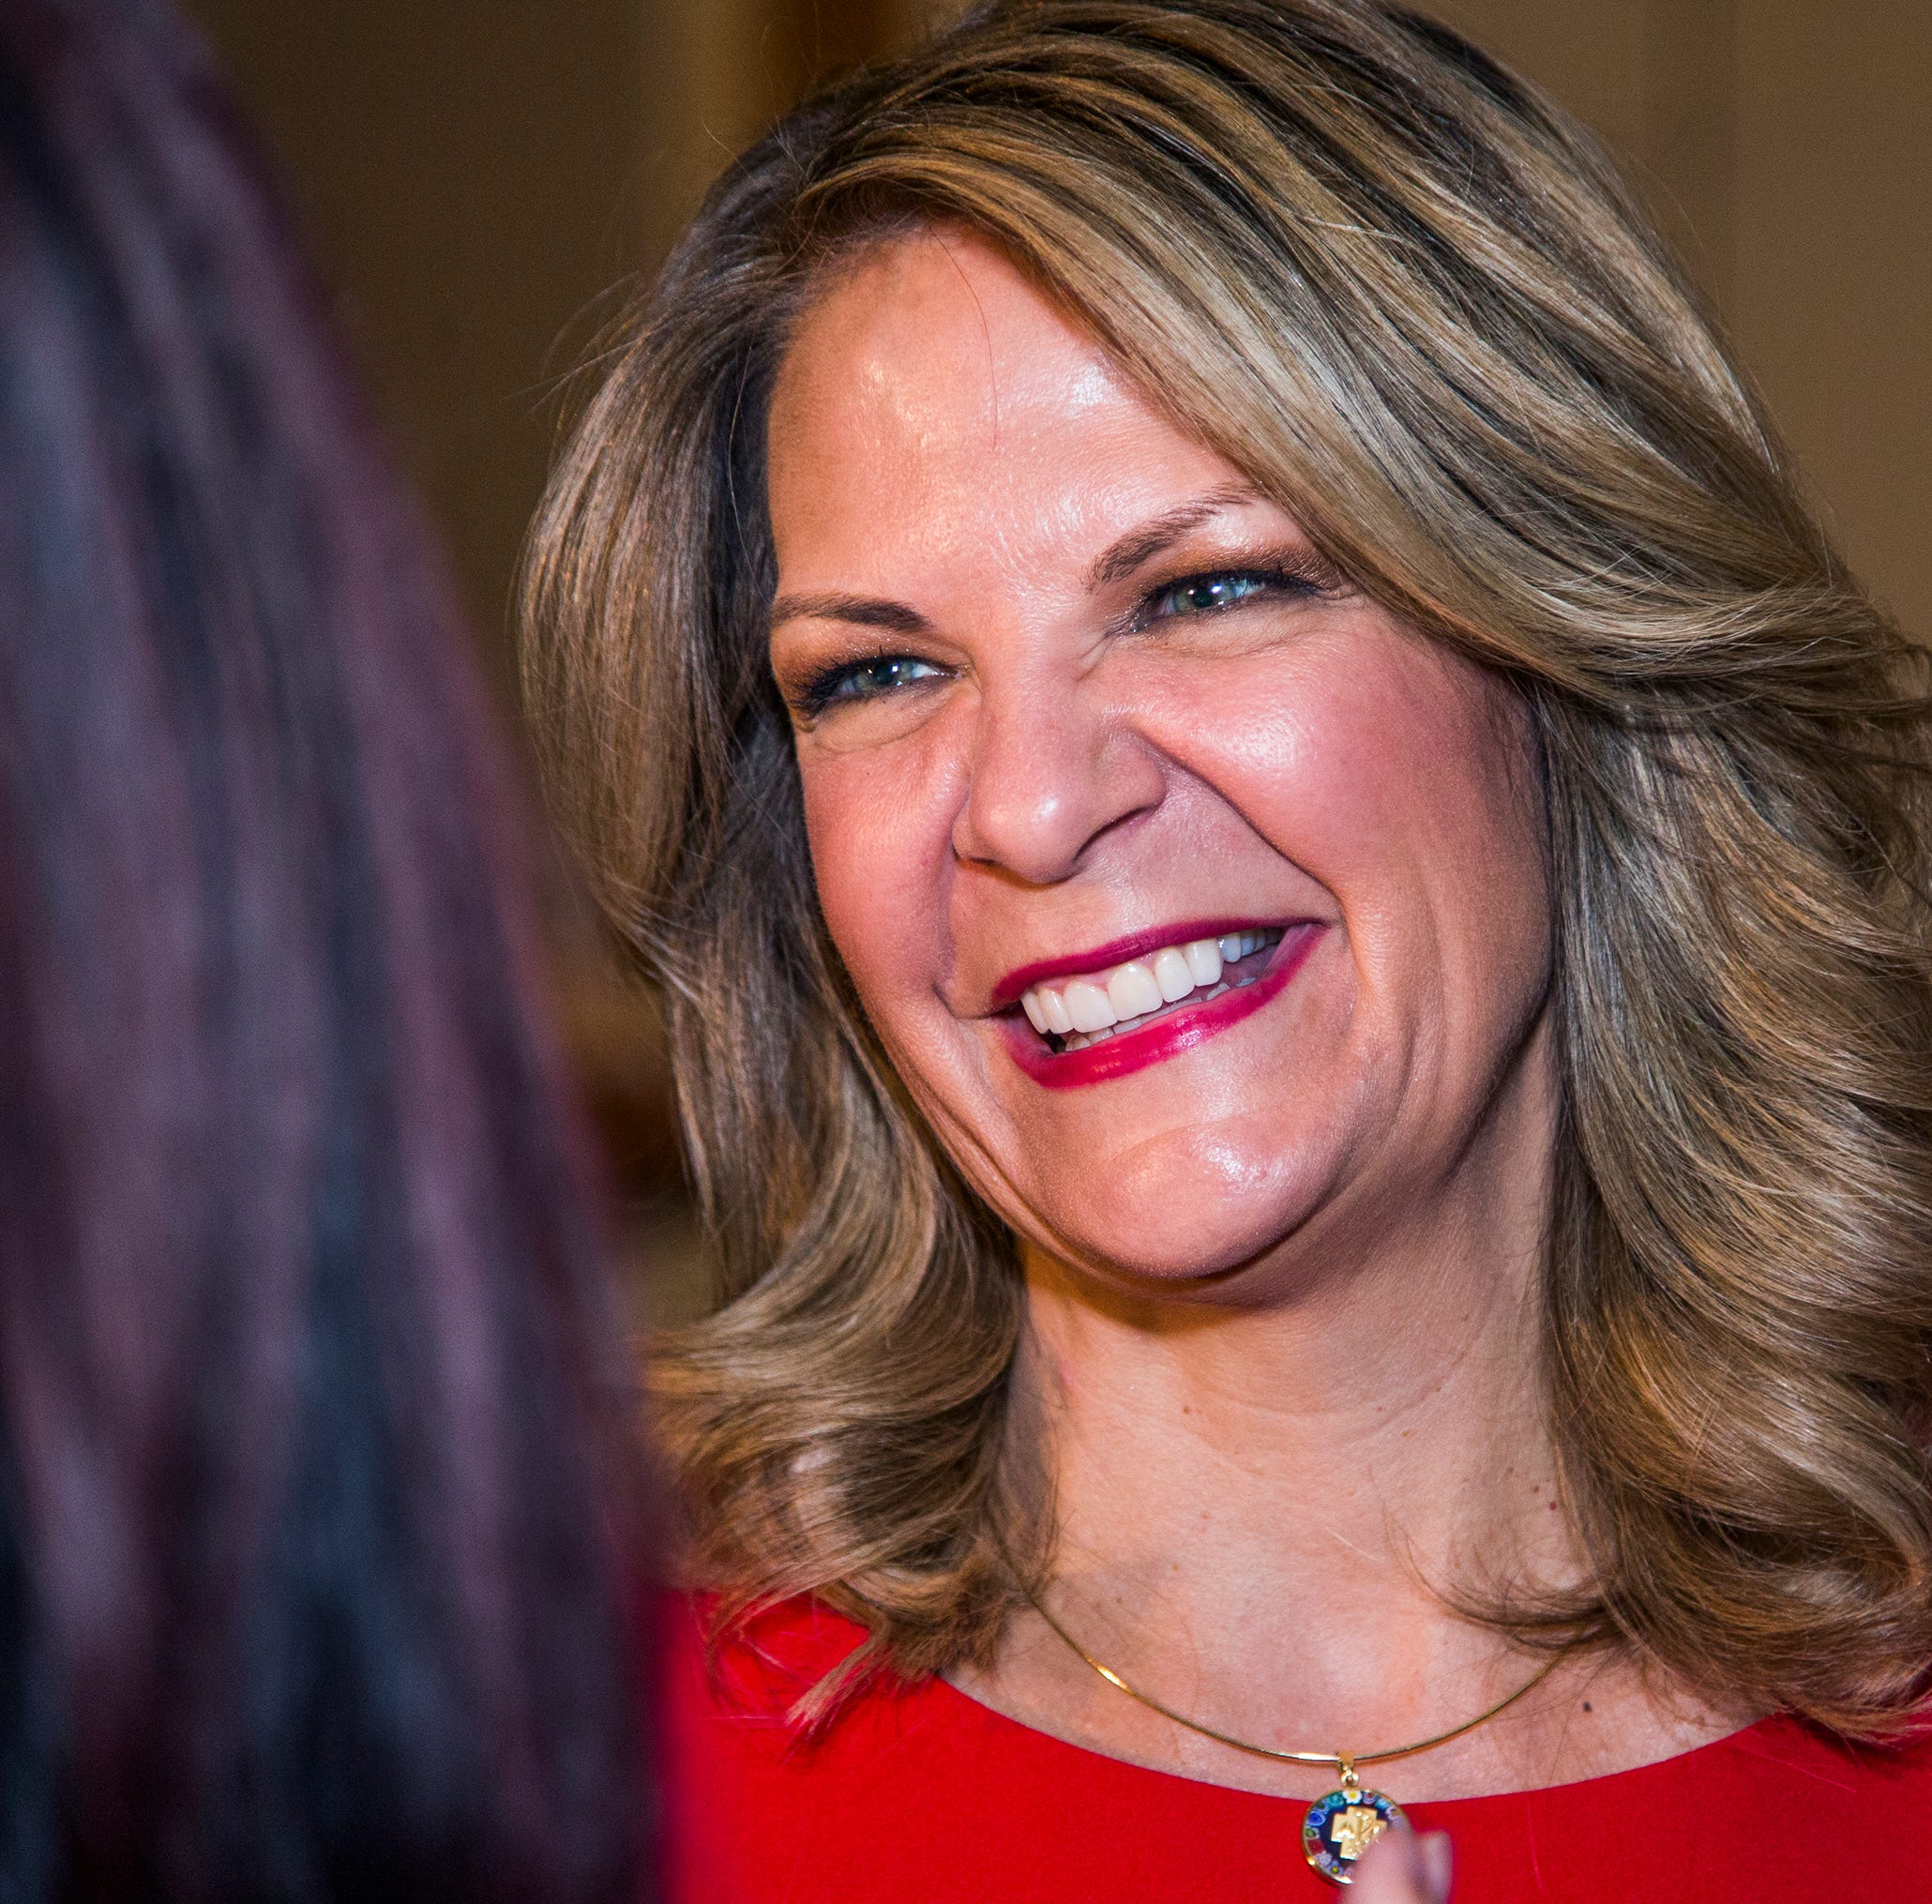 Kelli Ward is tanking as Arizona GOP chief. This is good for Republicans